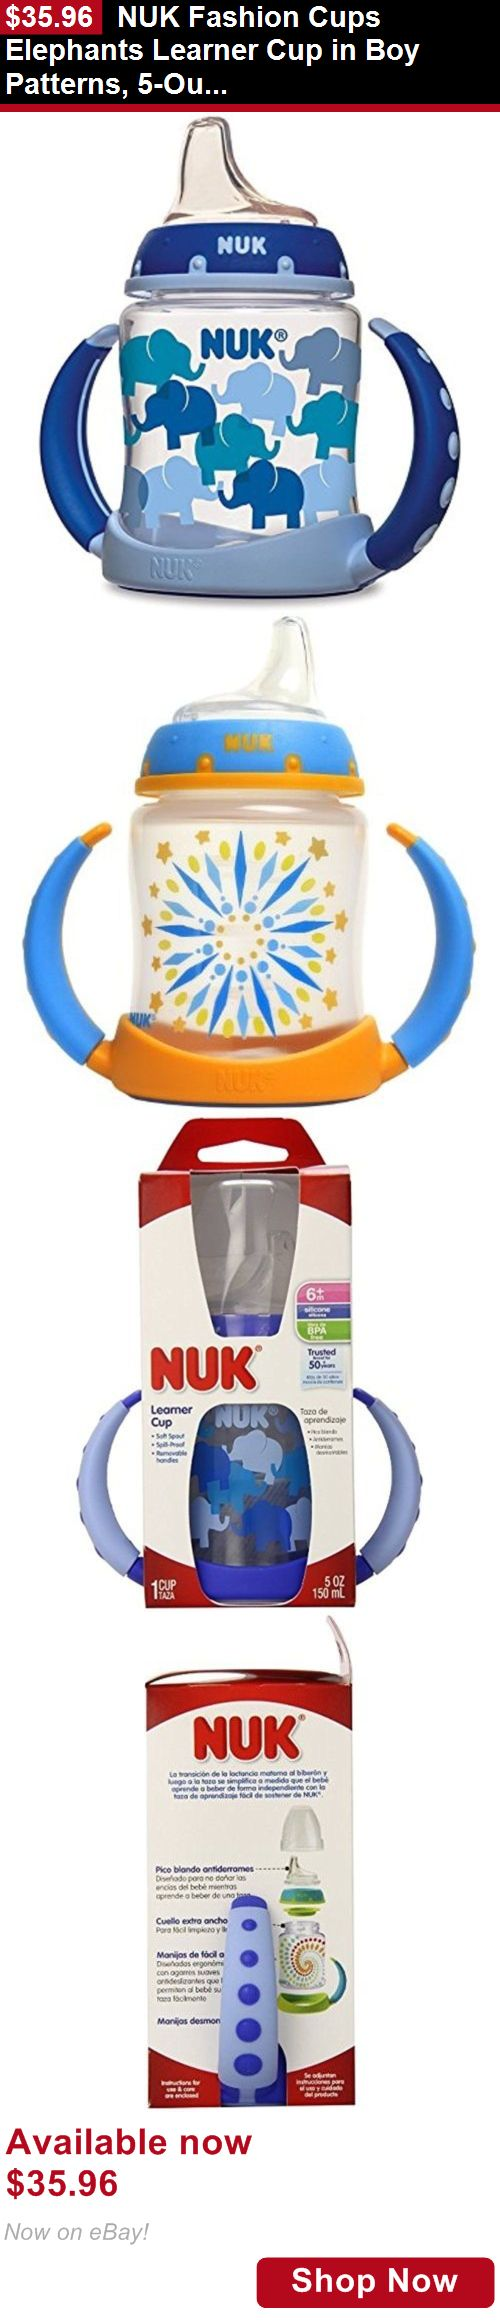 Baby Sippy Cups And Mugs: Nuk Fashion Cups Elephants Learner Cup In Boy Patterns, 5-Ounce BUY IT NOW ONLY: $35.96